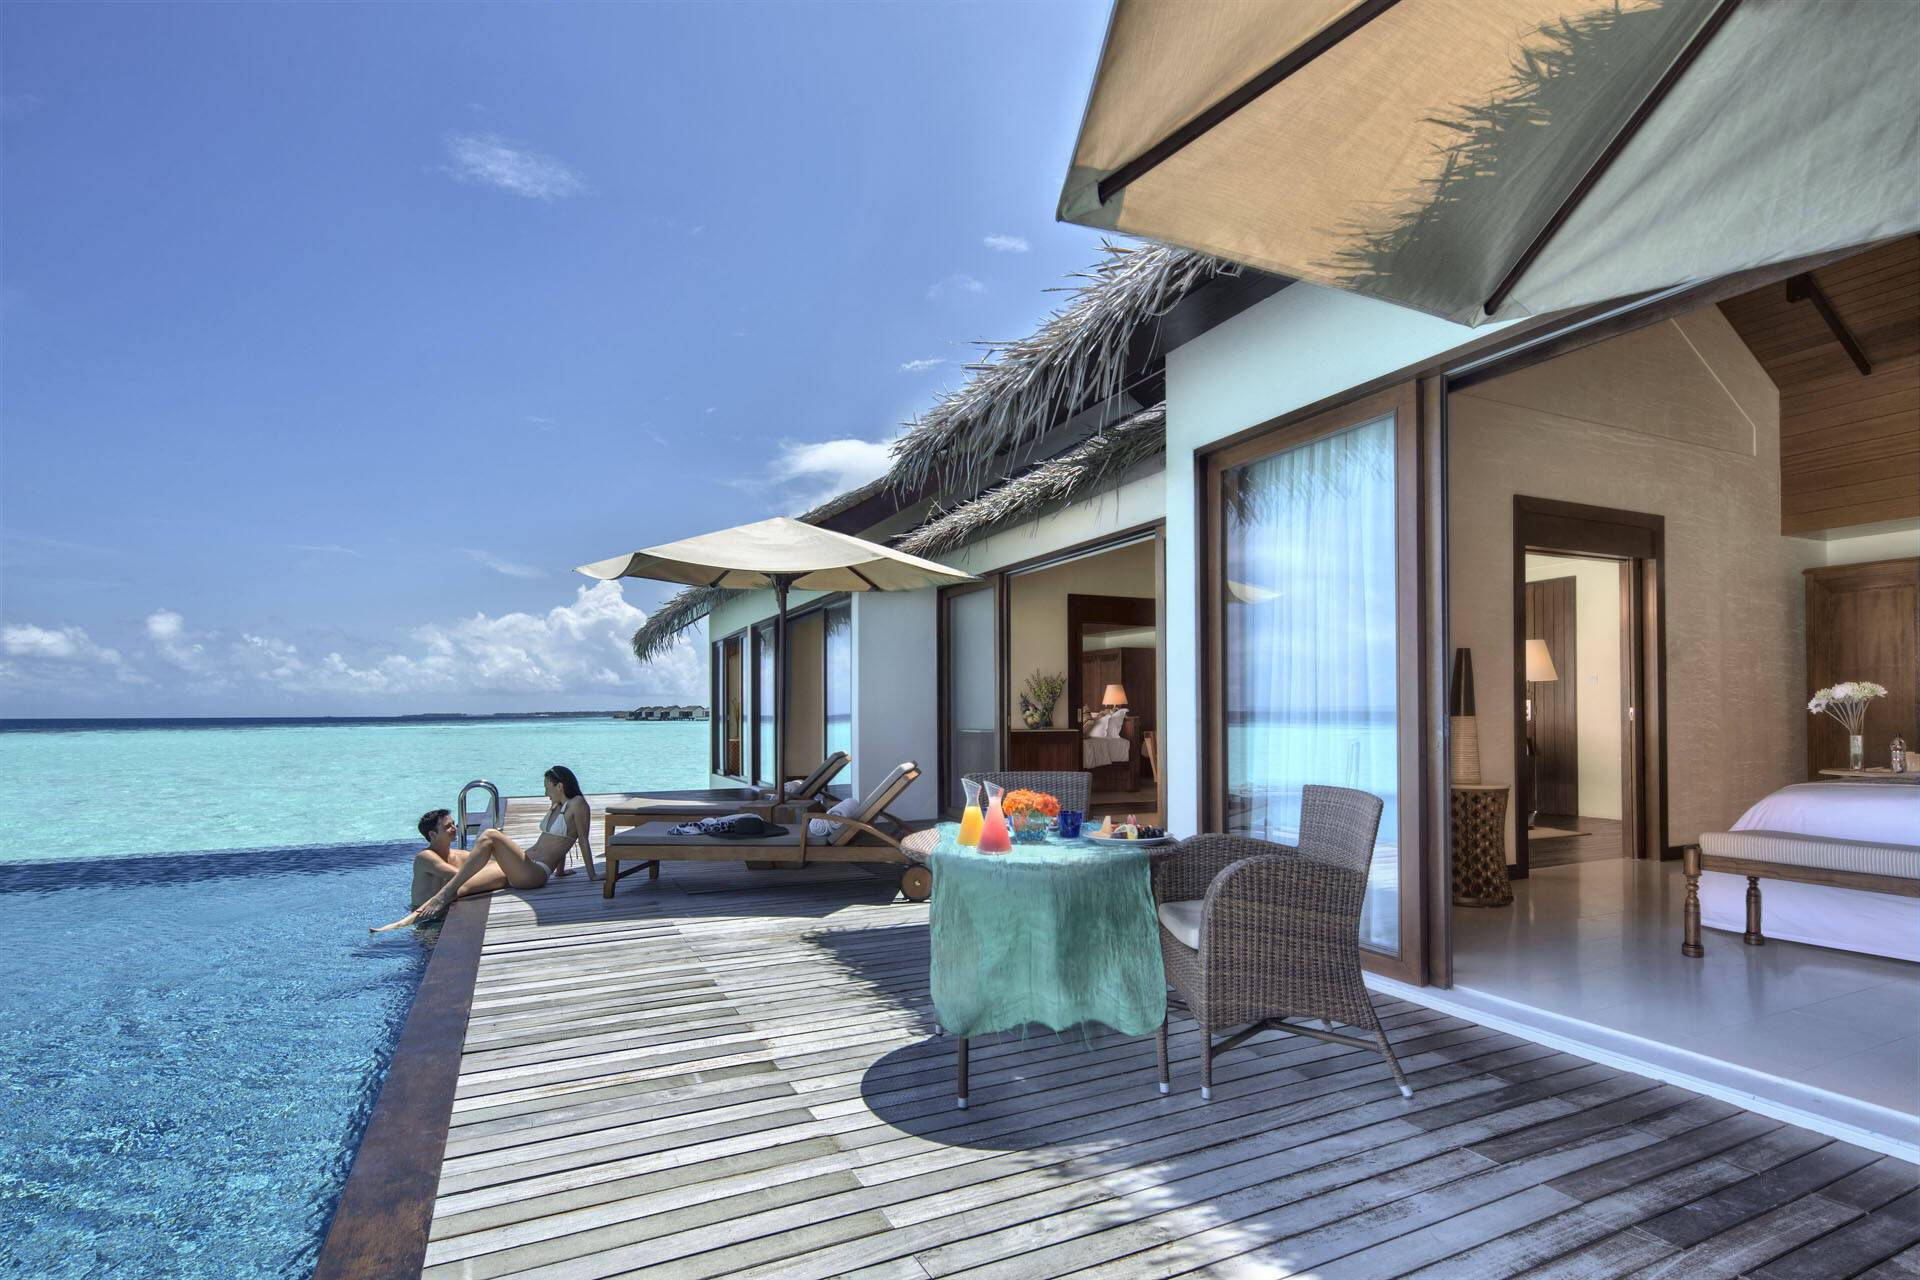 The Residence Villa Water Pool Terrasse MaldivesJPG